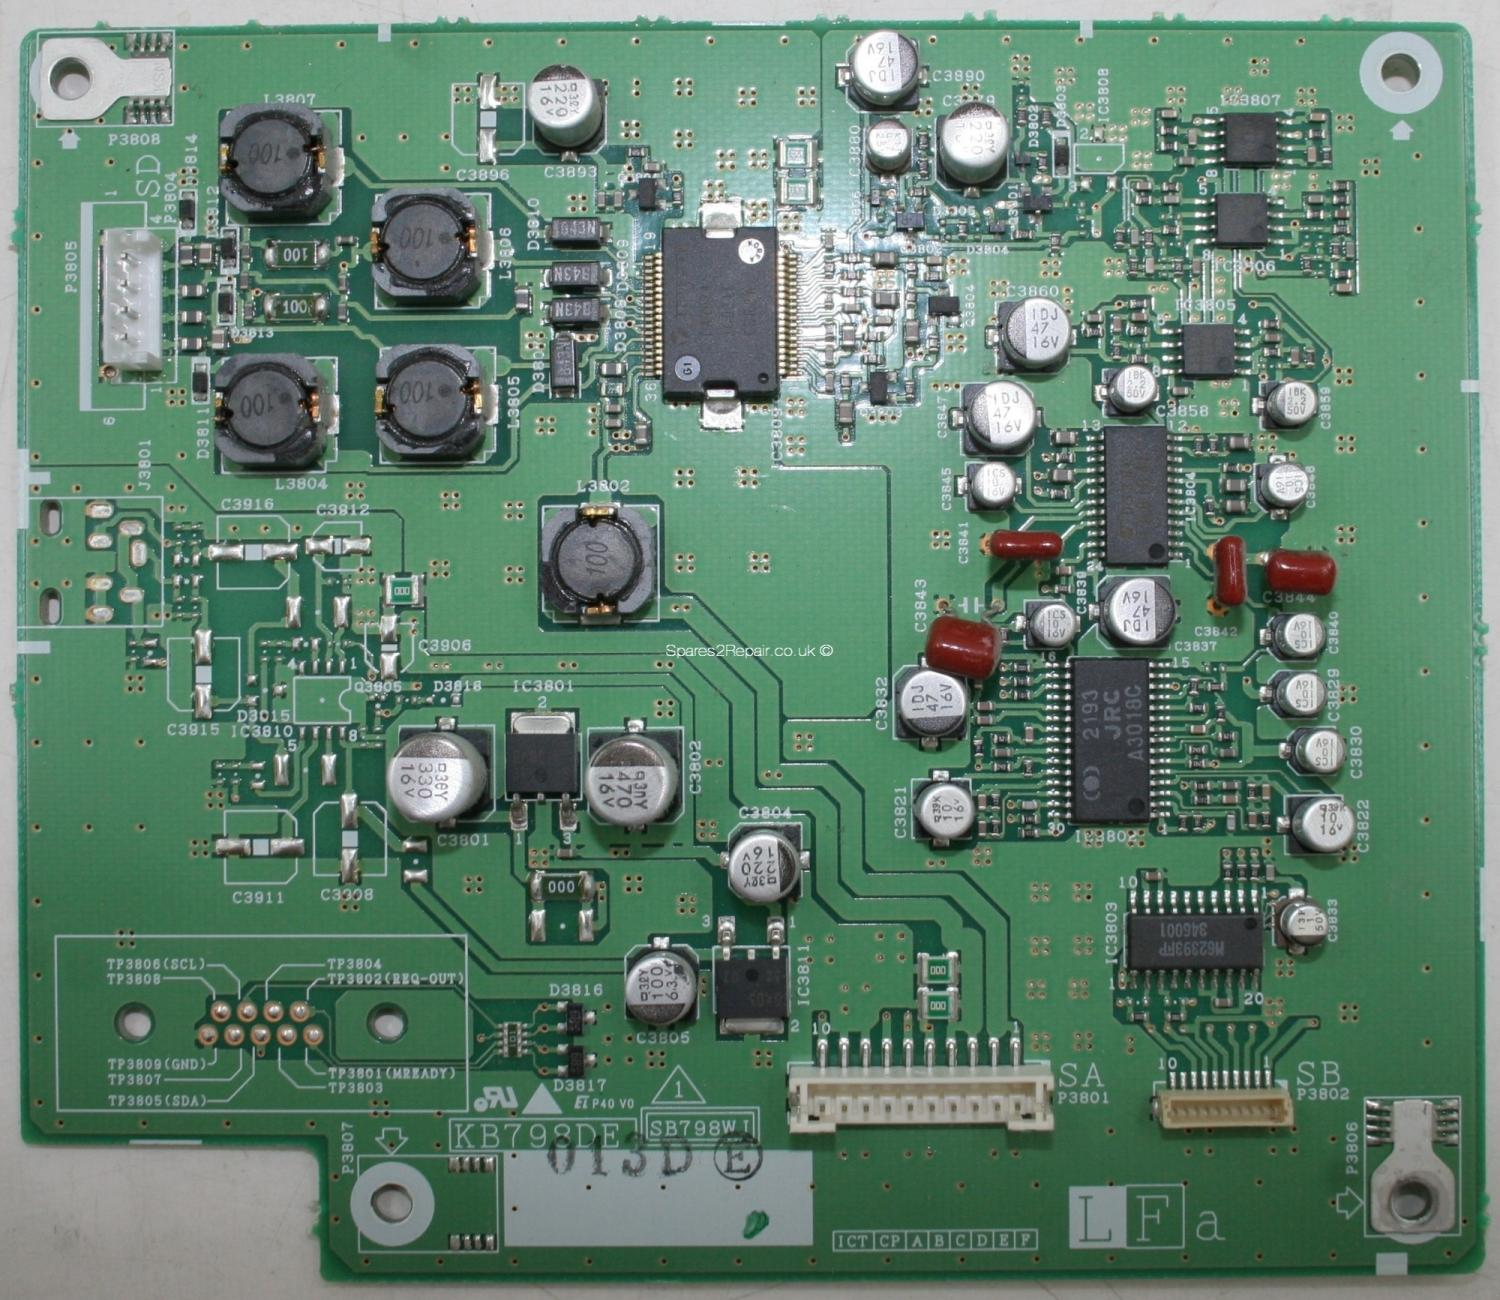 Sharp LC-30HV4E - Board - KB798DE - SB798WJ